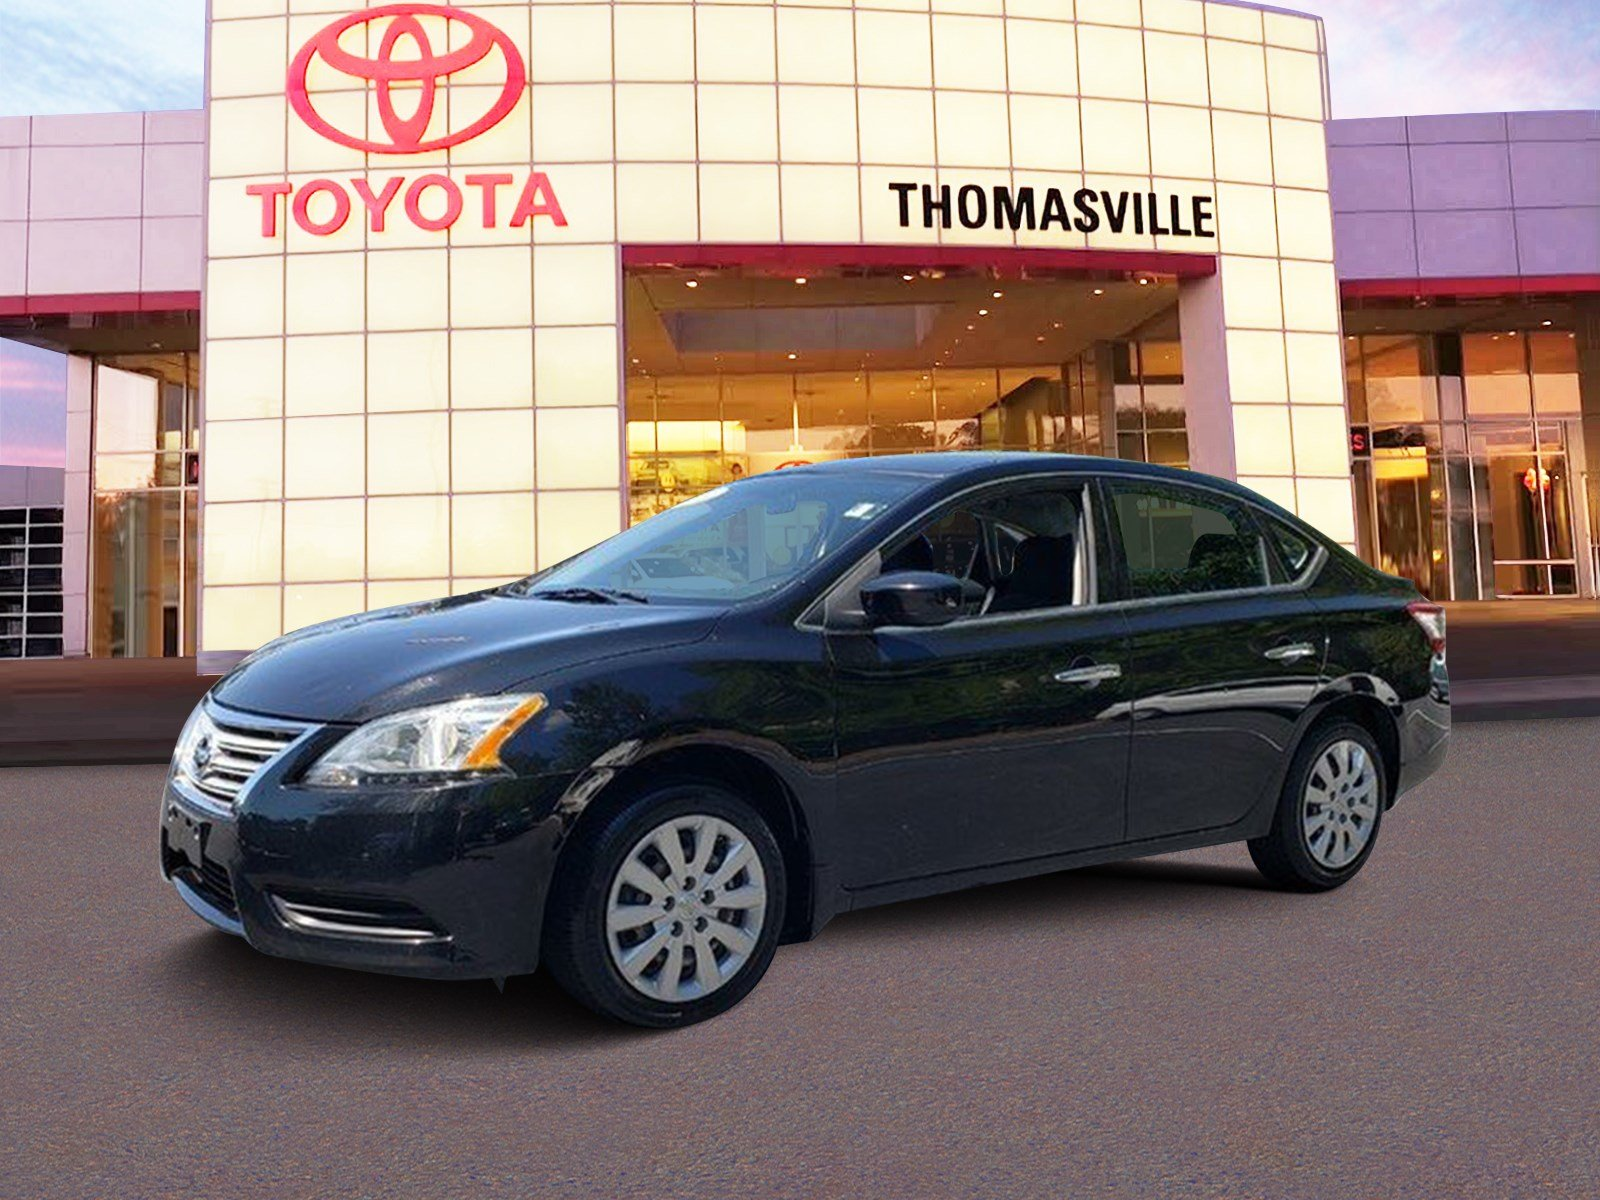 Pre Owned 2014 Nissan Sentra SV 4dr Car in Thomasville A